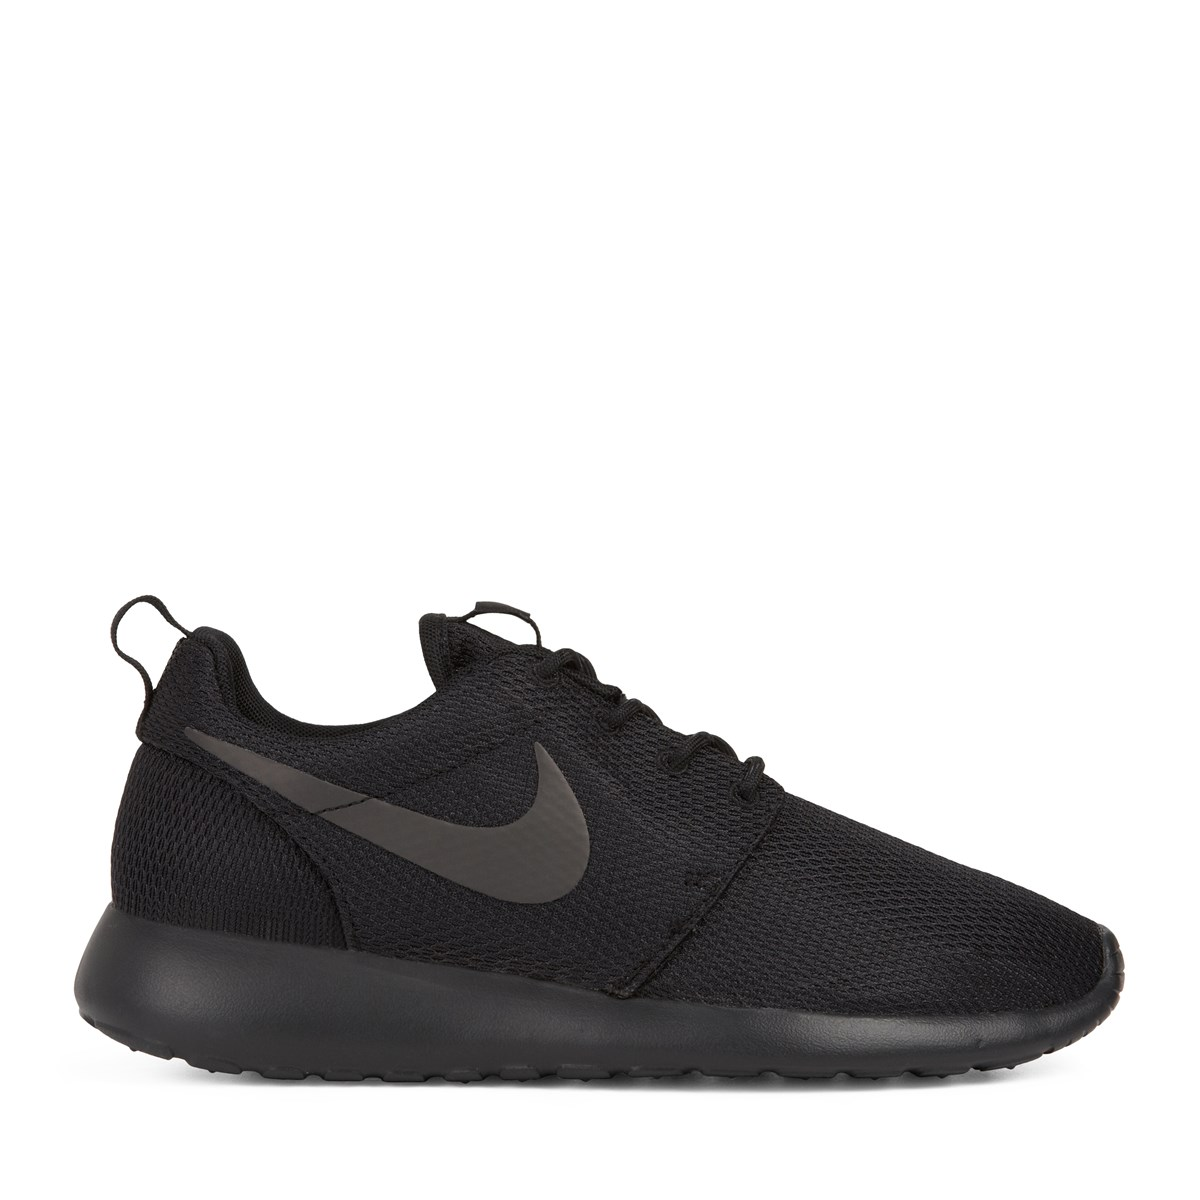 Women s Roshe One All Black Sneaker. Previous. default view ... 9b00ece6f2